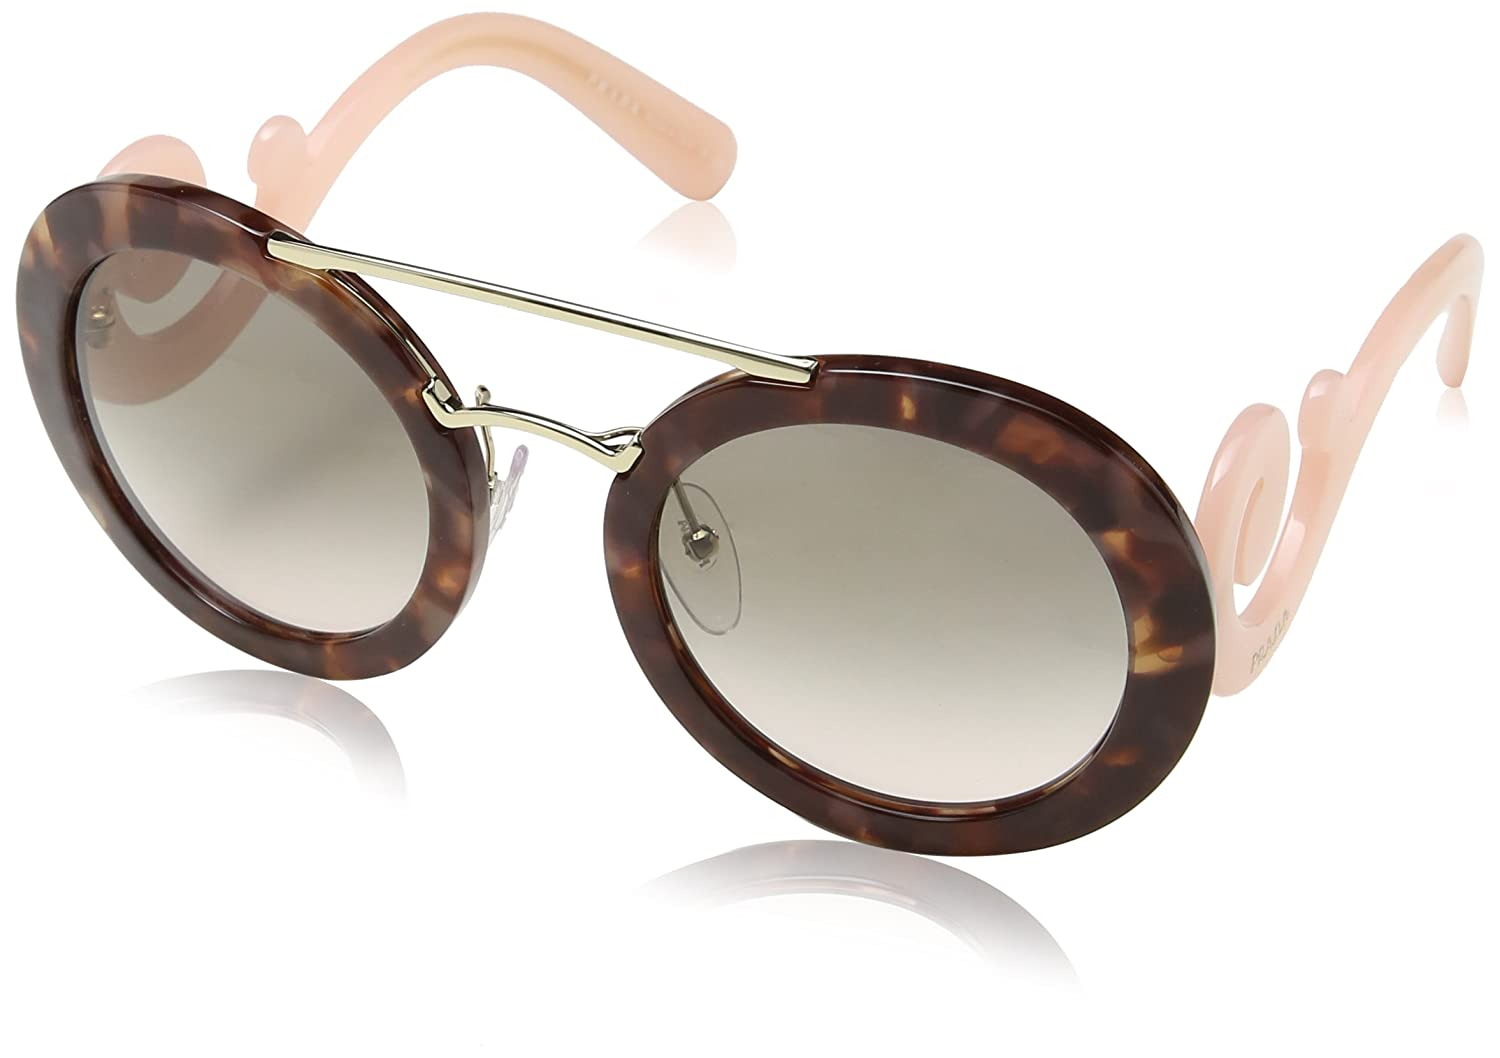 aeb53762cd63 Prada Women s PR 13SS Sunglasses Spotted Brown Pink   Pink Gradient Grey  54mm at Amazon Women s Clothing store